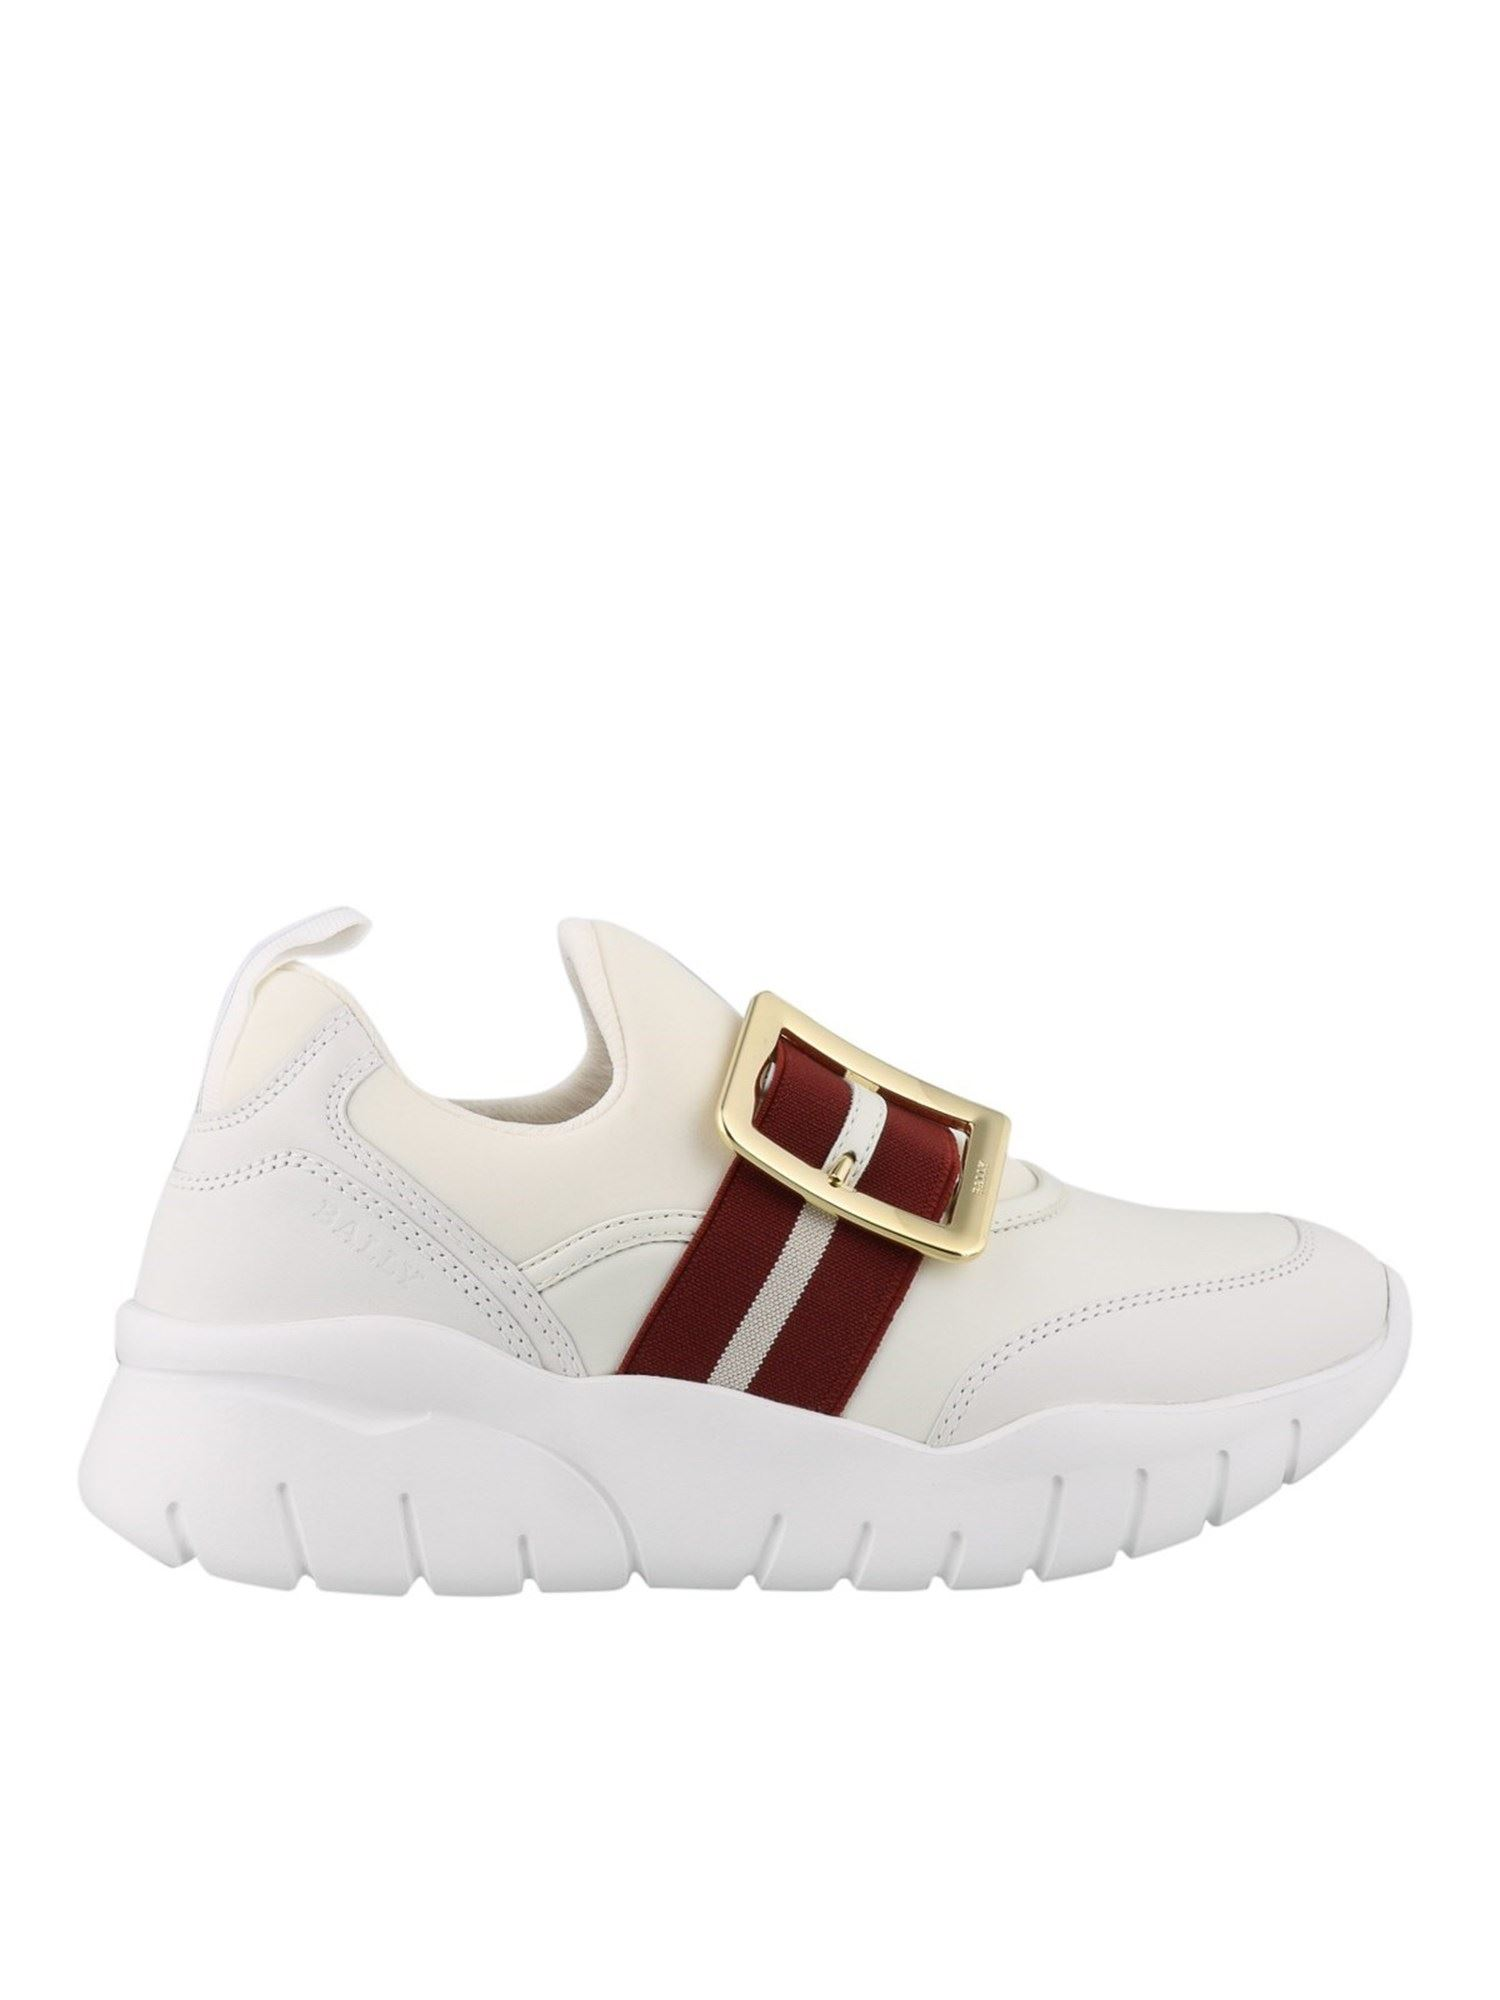 BALLY WHITE BRINELLE SNEAKERS